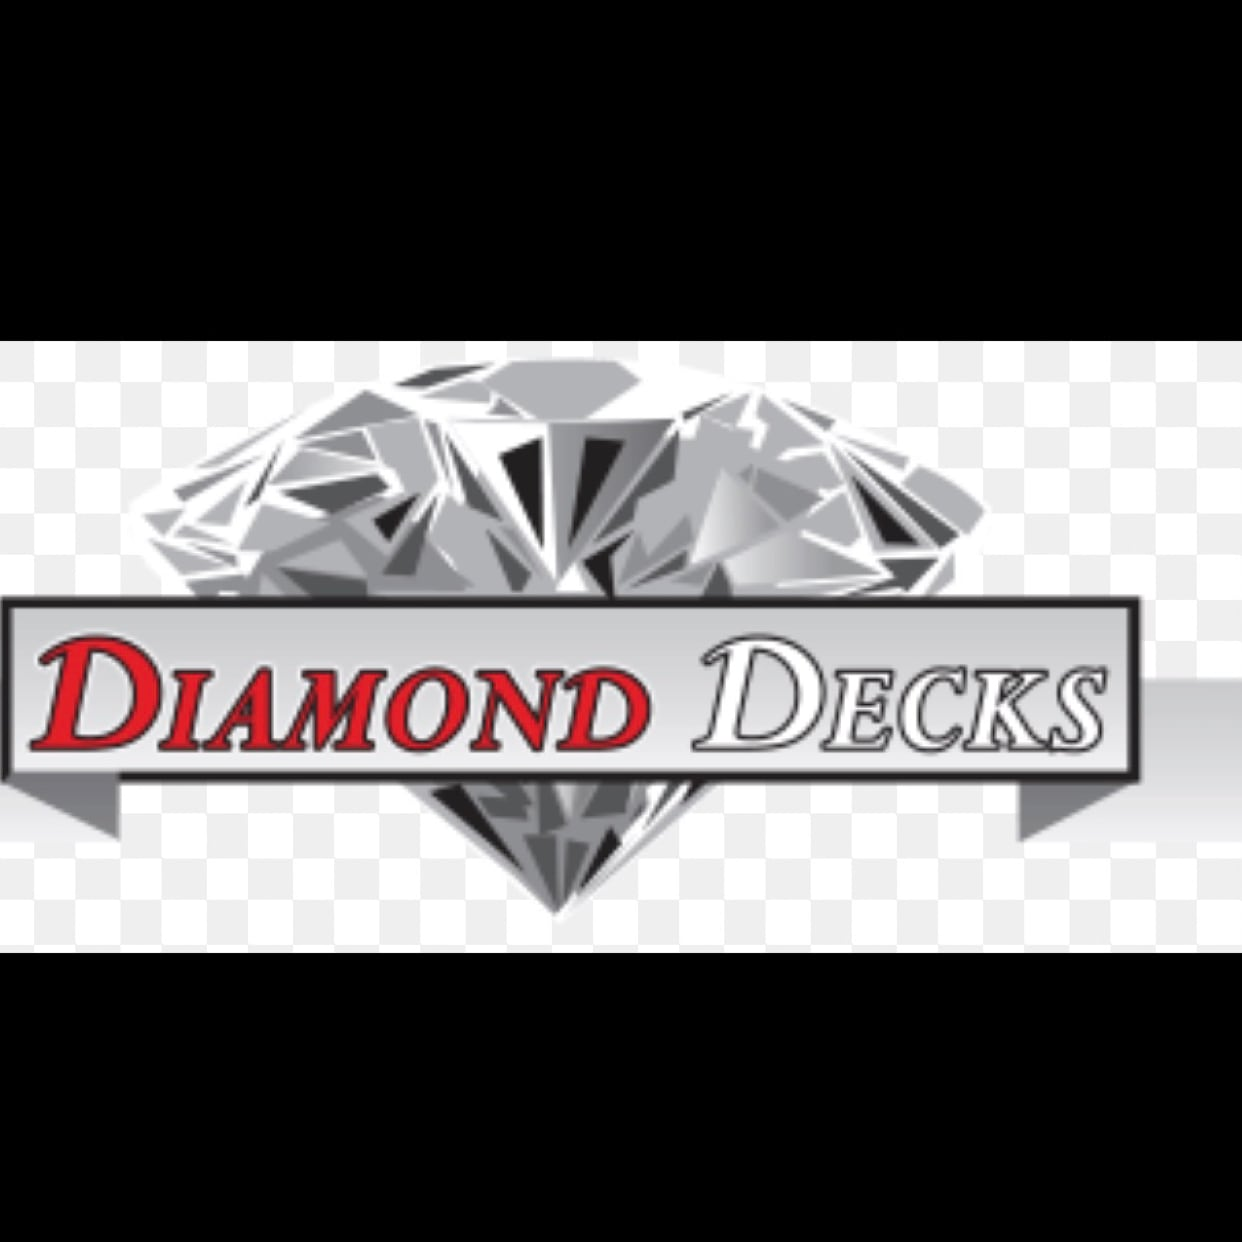 Diamond Decks